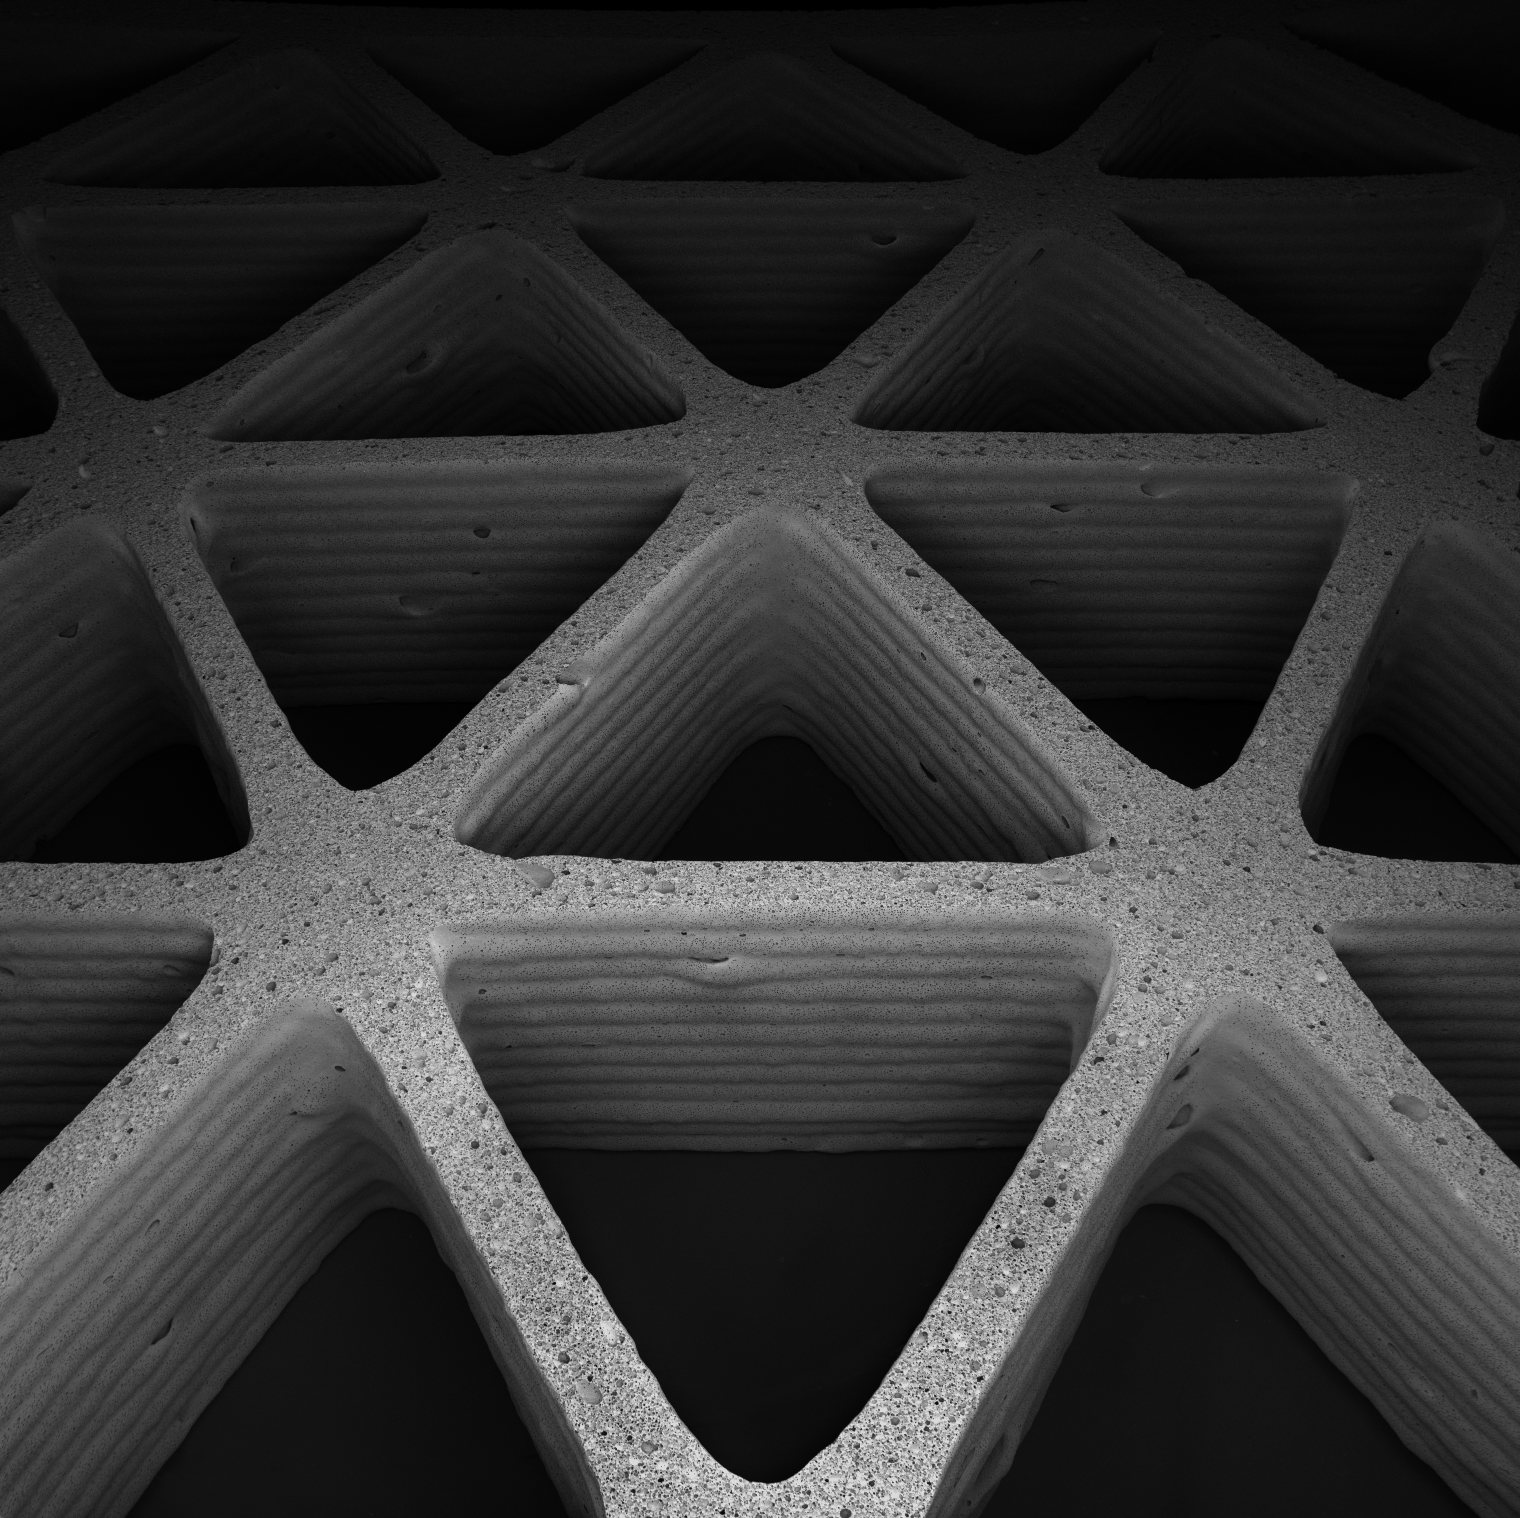 Mimicking Nature's Cellular Architectures Via 3D Printing